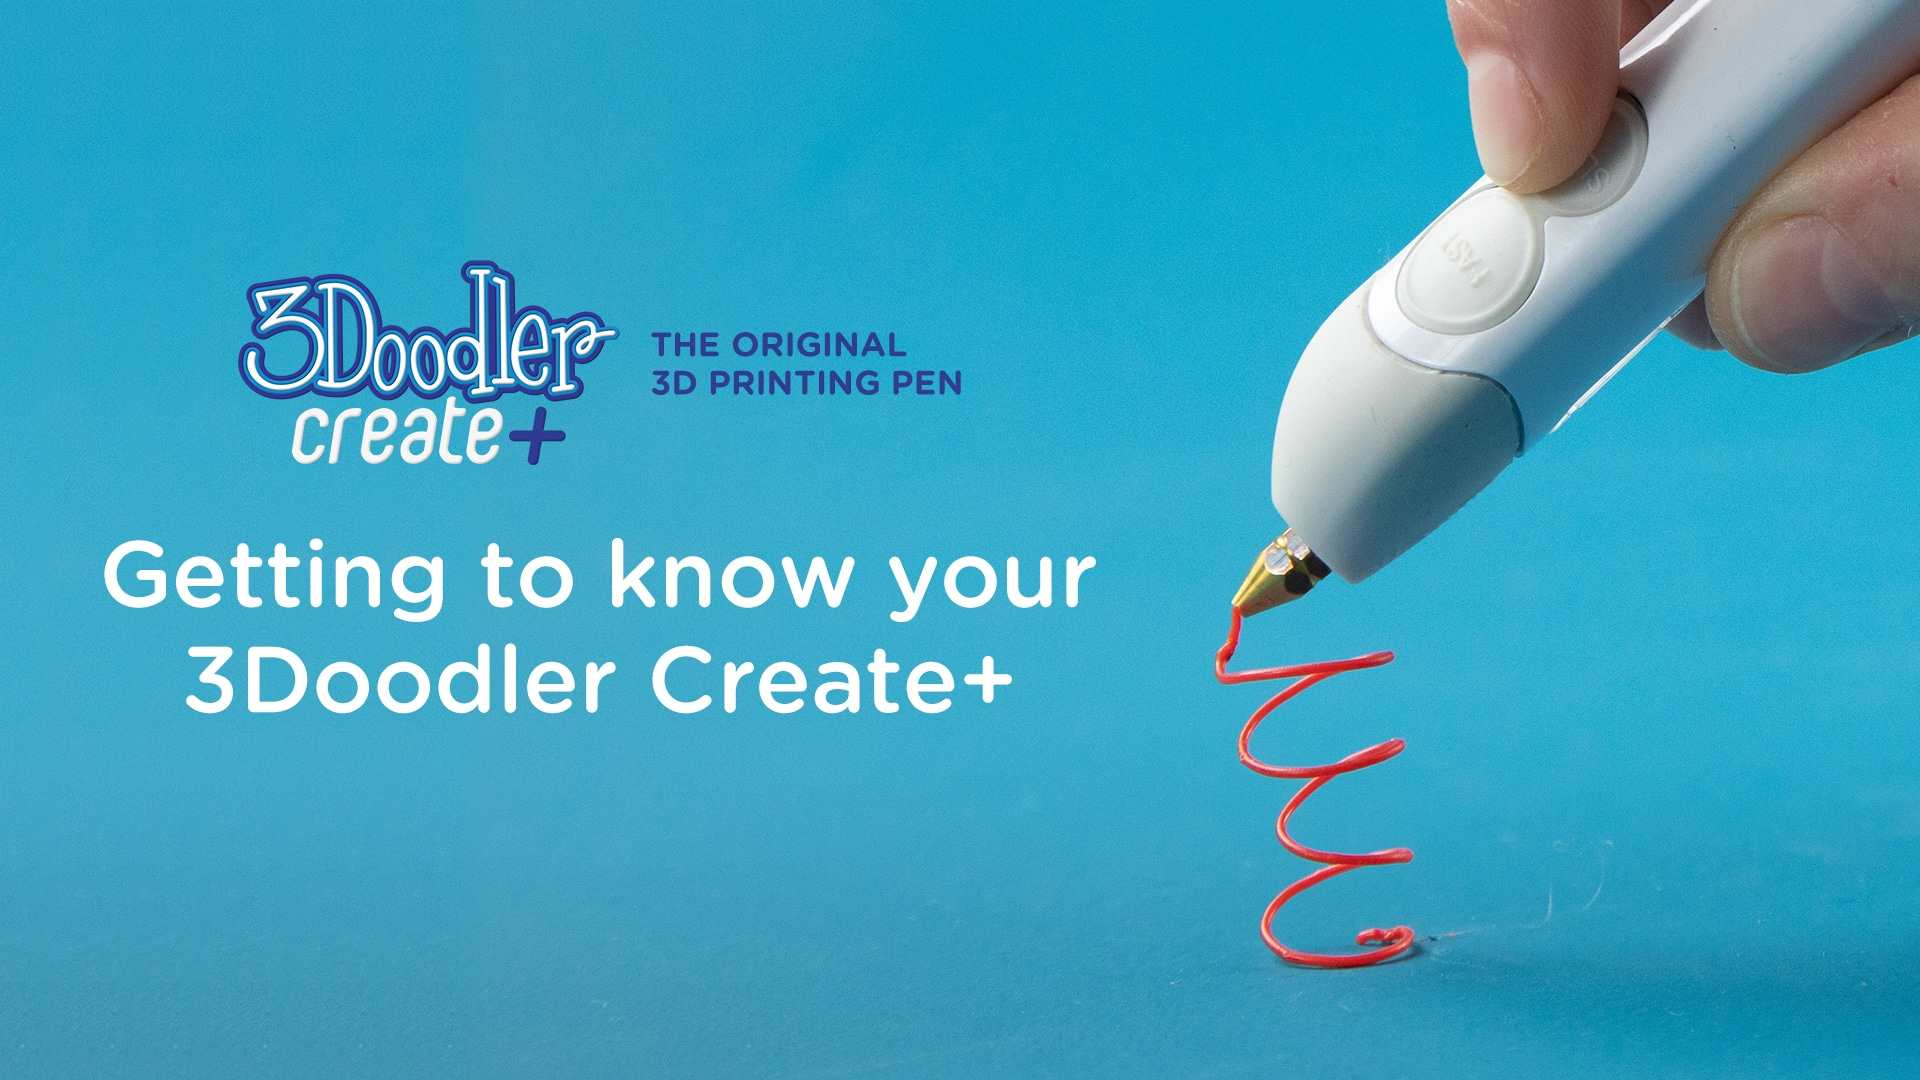 Getting to Know your 3Doodler Create+